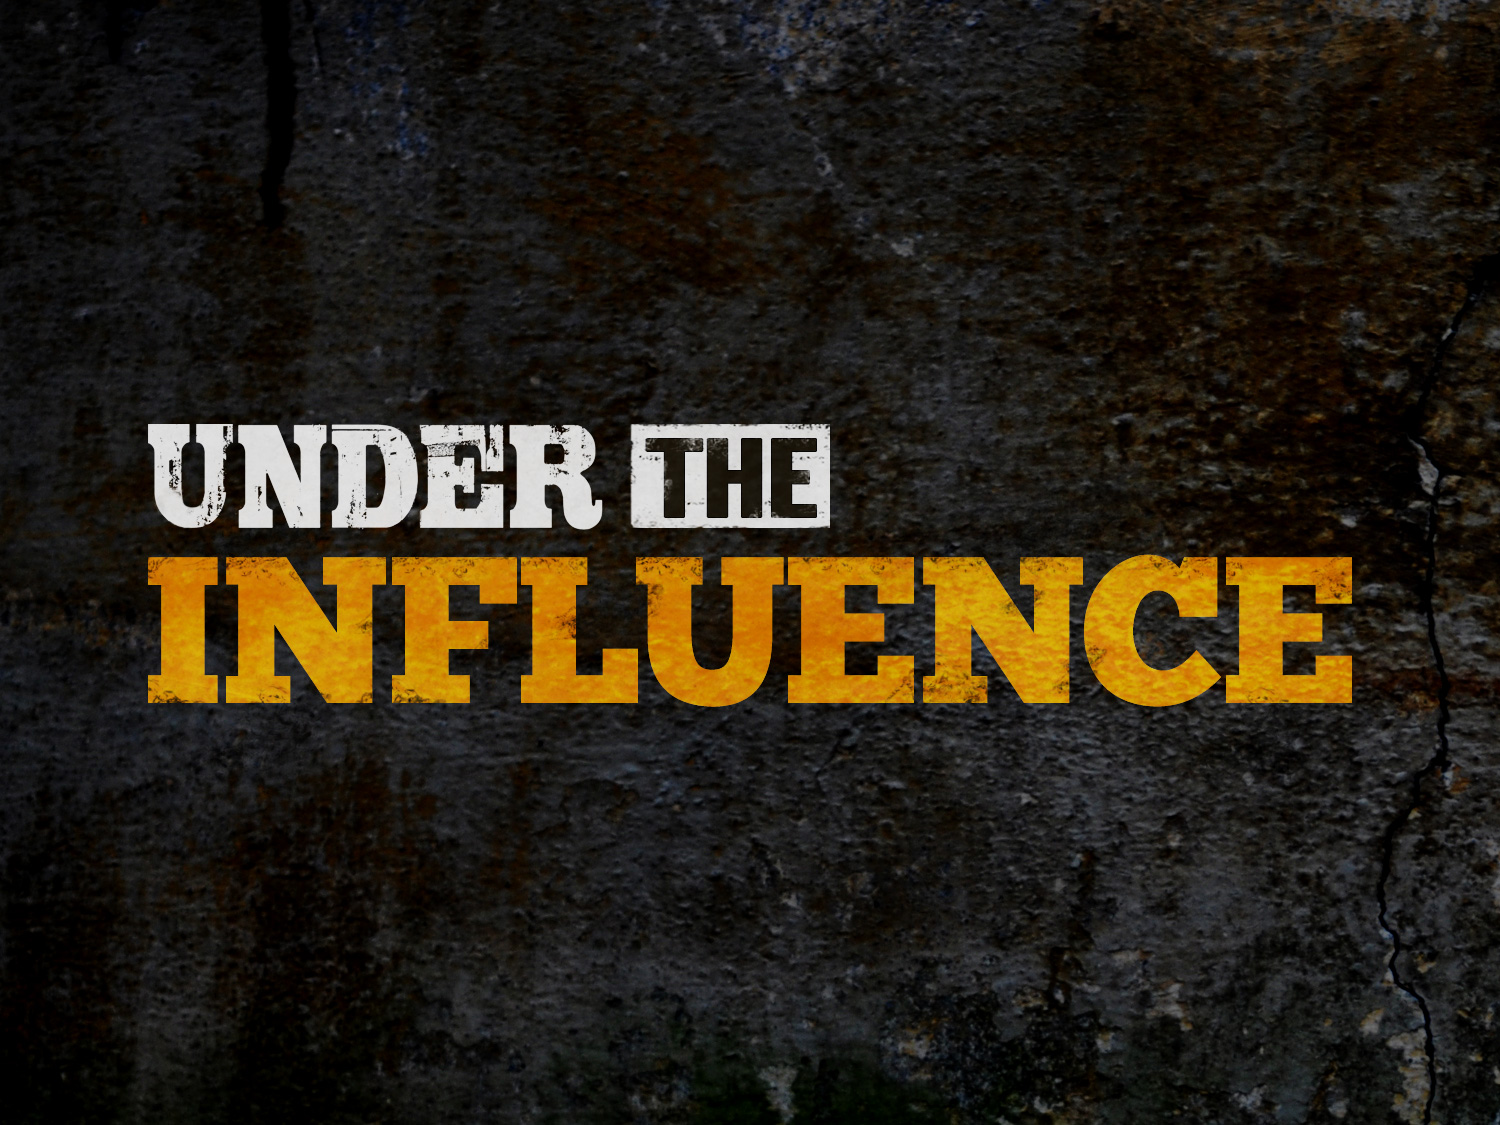 under the influence of the media Social media is well-known for displaying drastic advertisement and images, especially when it comes to body images today, companies advertise products that go beyond the standard expectation of perfection and, as a result, affect the nature of what true beauty is.